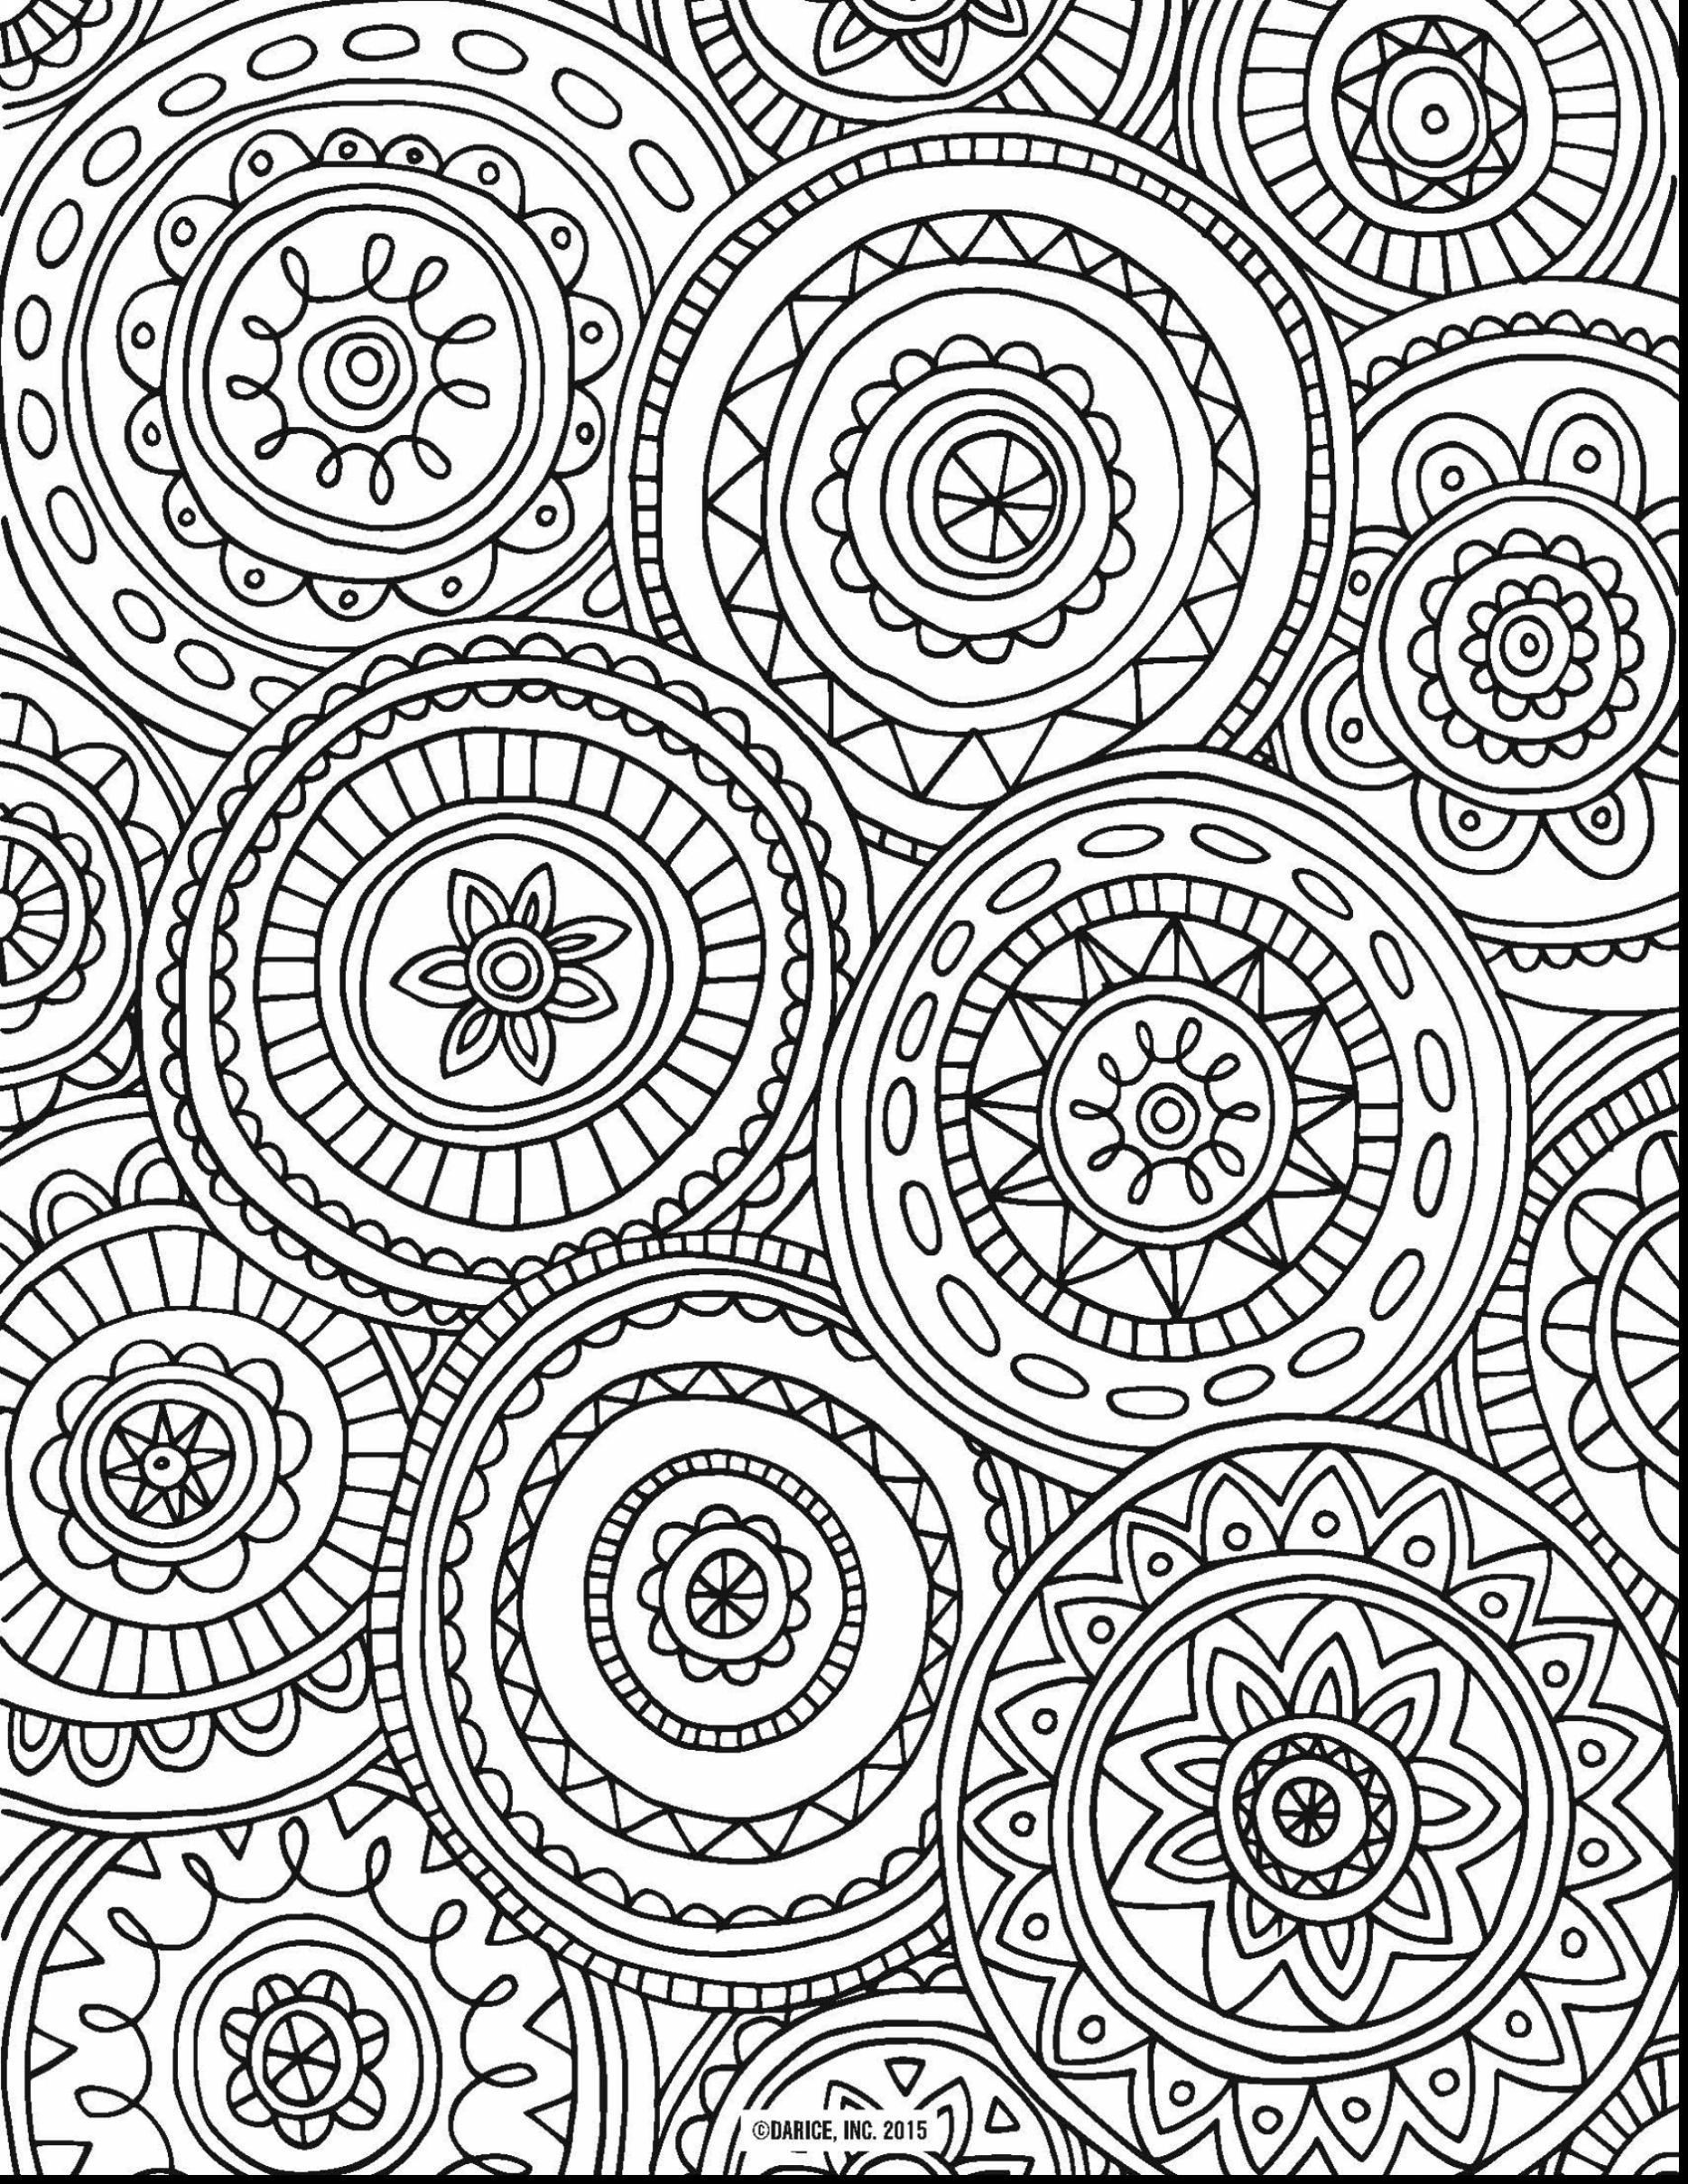 Best Of Free Printable Mandala Coloring Pages For Adults Pdf - Free Printable Mandala Coloring Pages For Adults